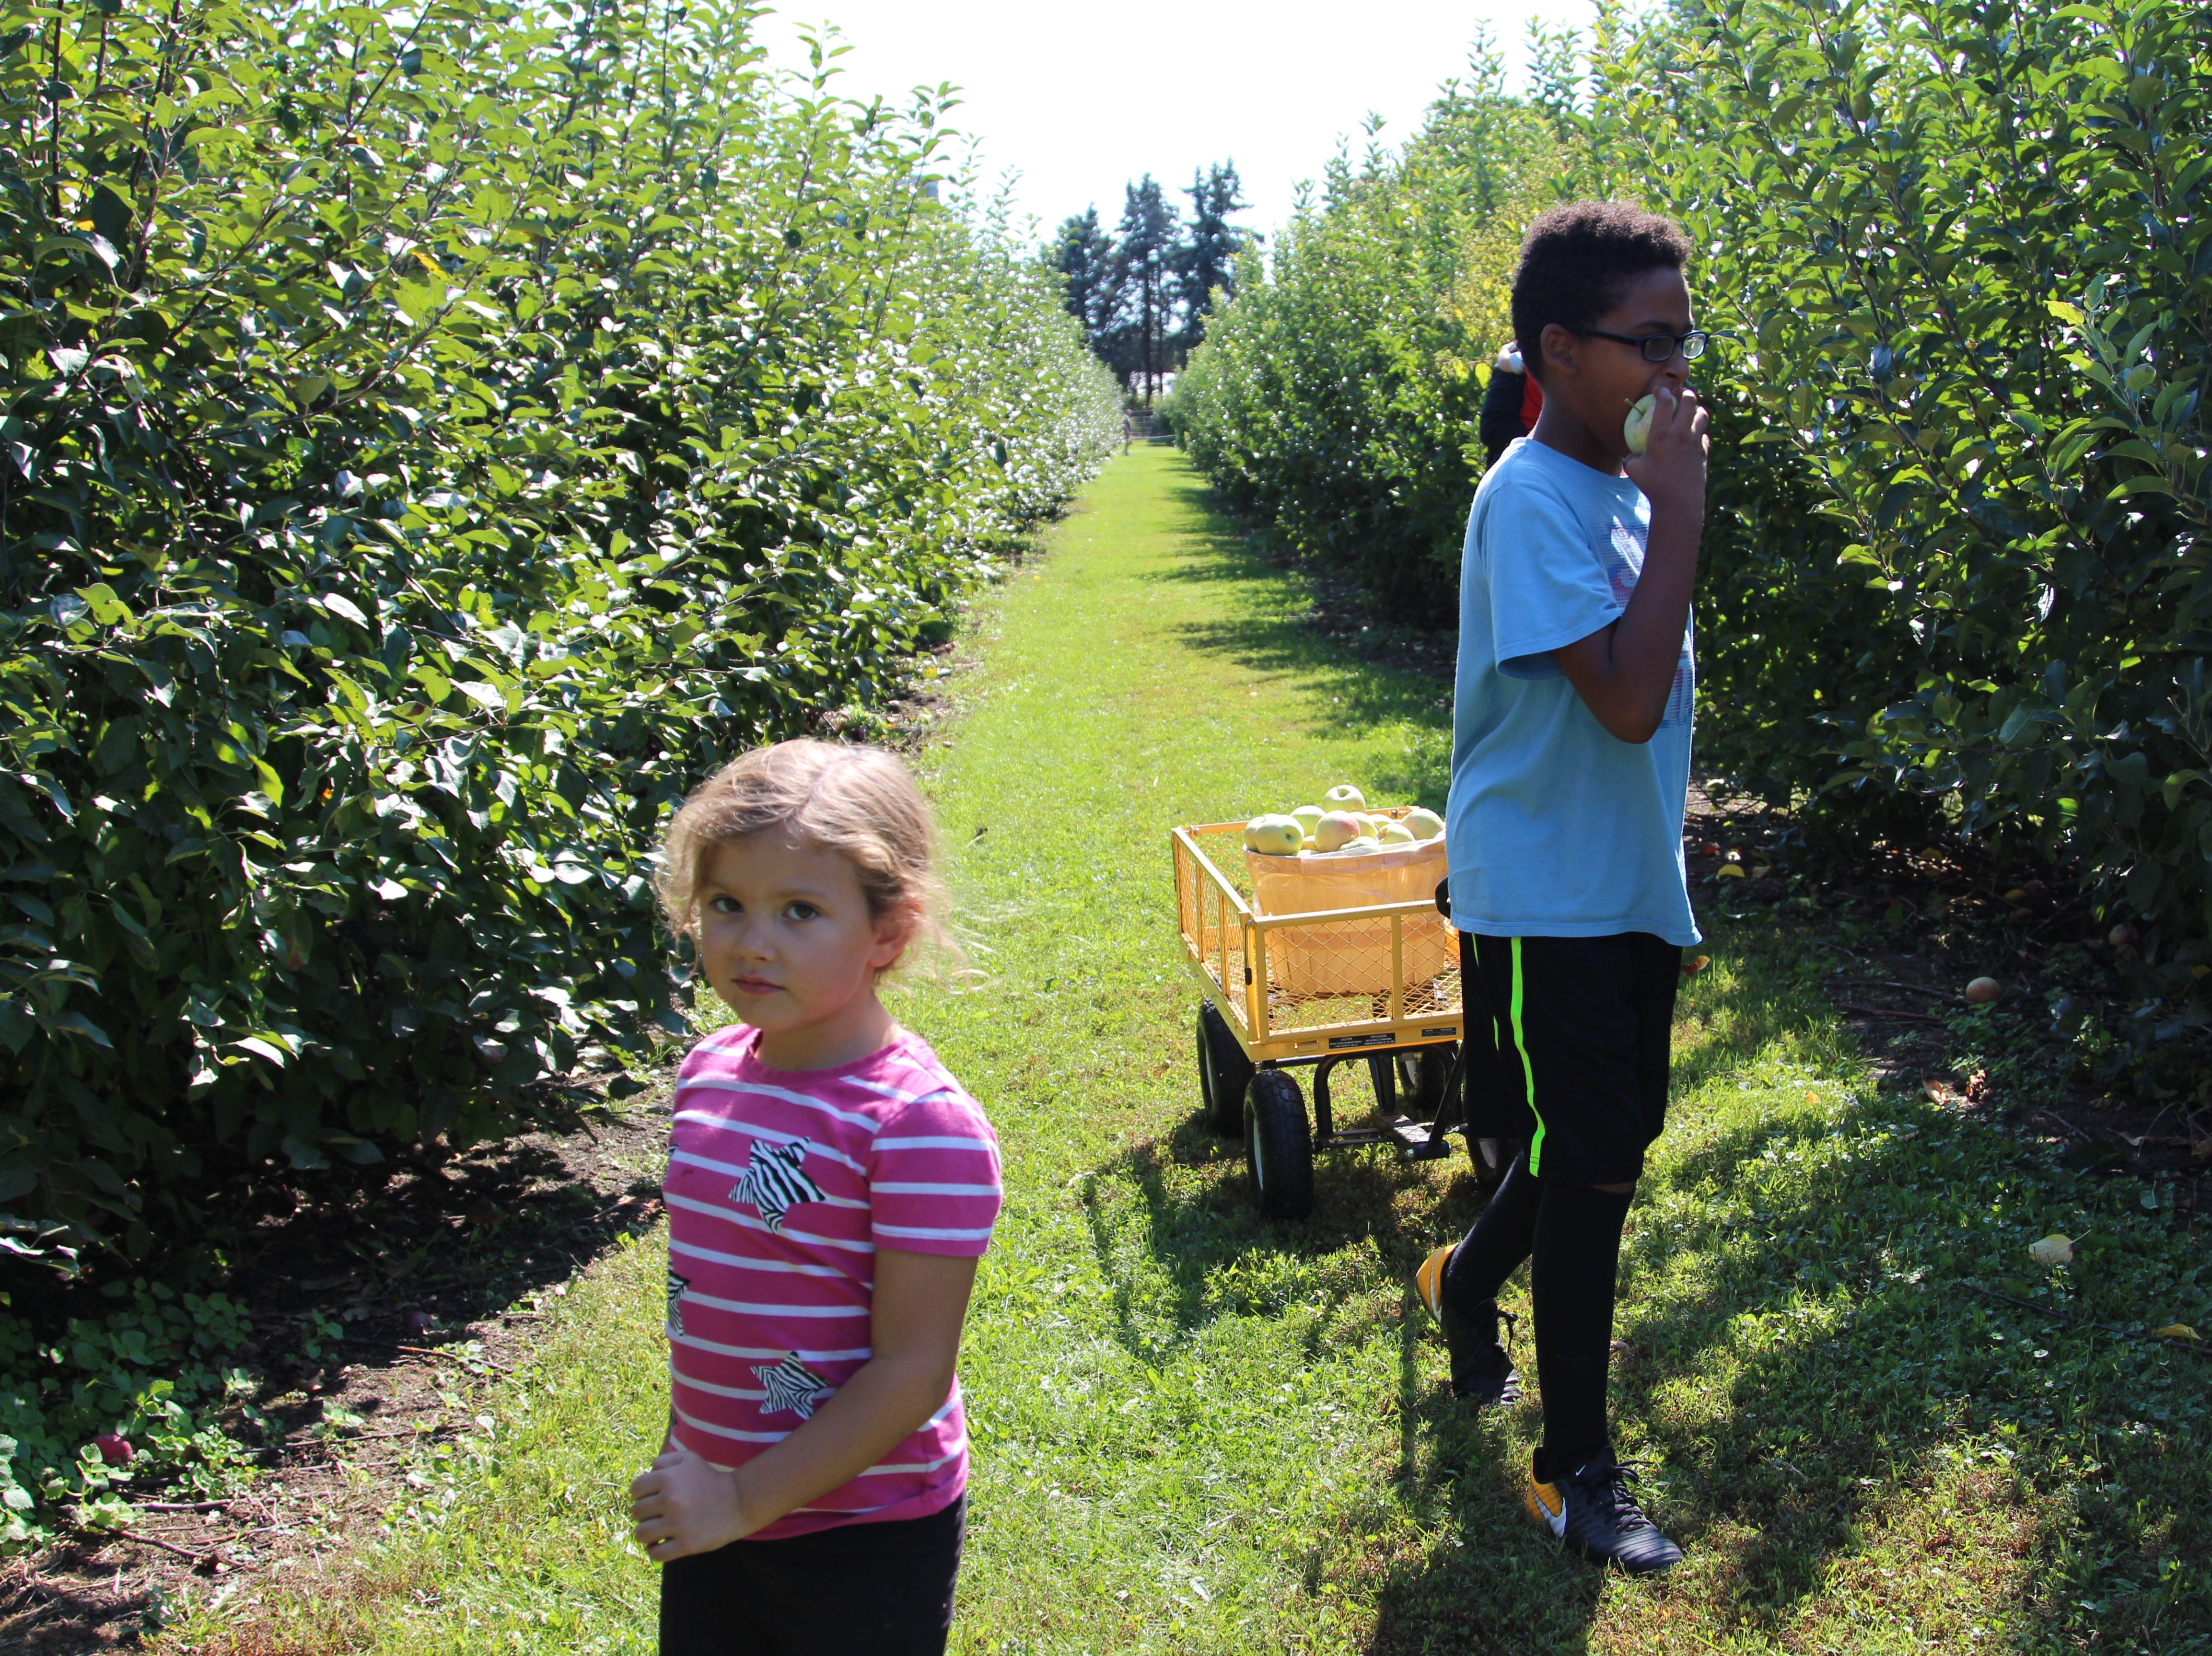 Sydney Strother, 5, picks apples along with Manny Strother, 10, at Applefest. The Strothers go to the festival at Lawrence Orchards every fall, where they pick a barrel of apples to make pies or applesauce or crisps with.